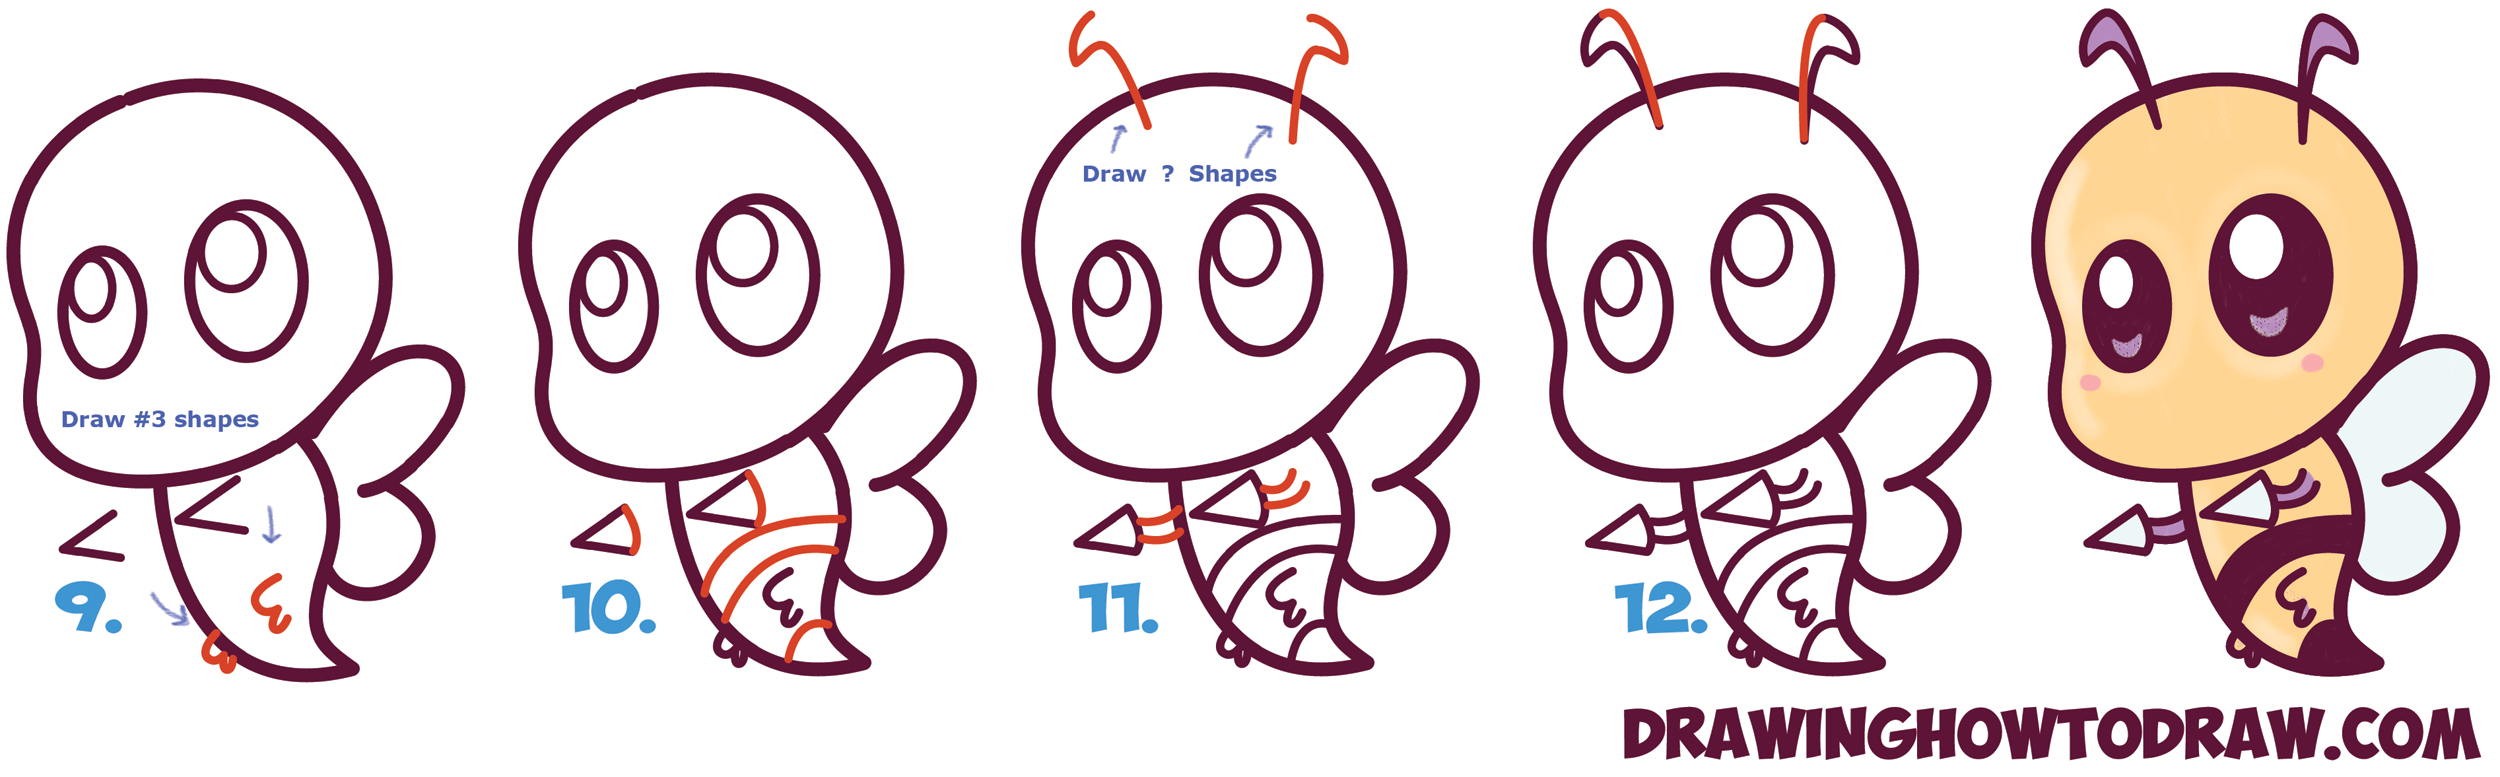 Learn How to Draw Cute / Chibi / Kawaii Beedrill from Pokemon Simple Steps Drawing Lesson for Kids